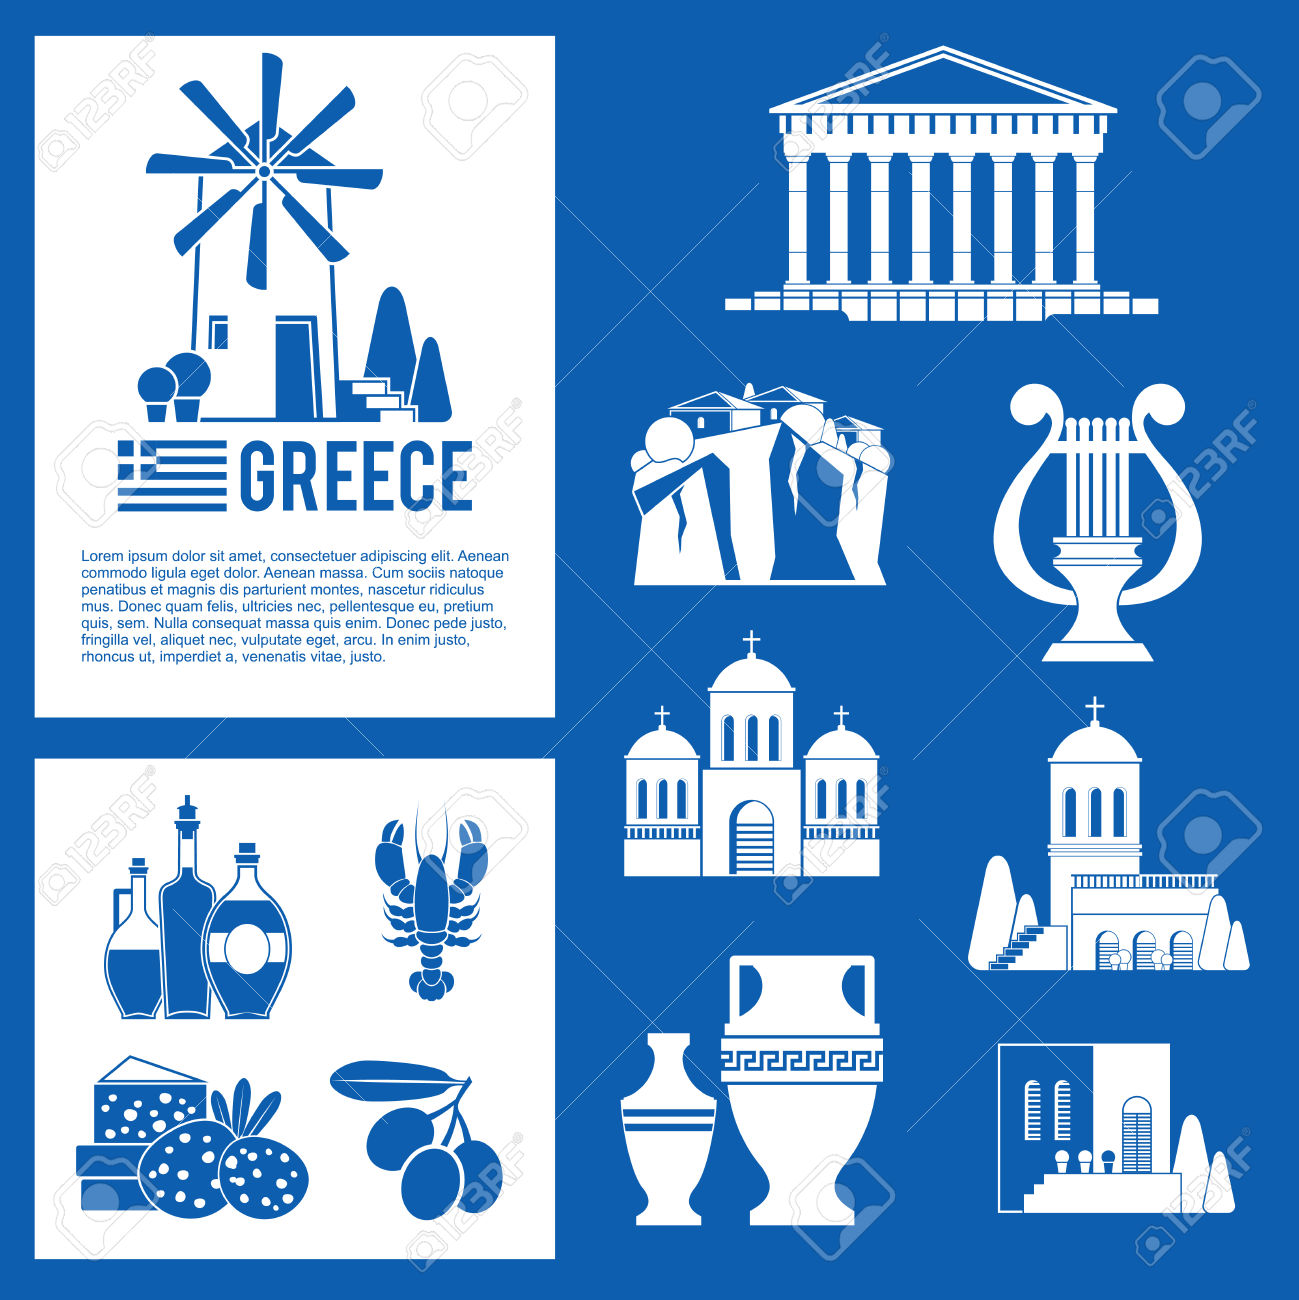 Mediterranean clipart #5, Download drawings